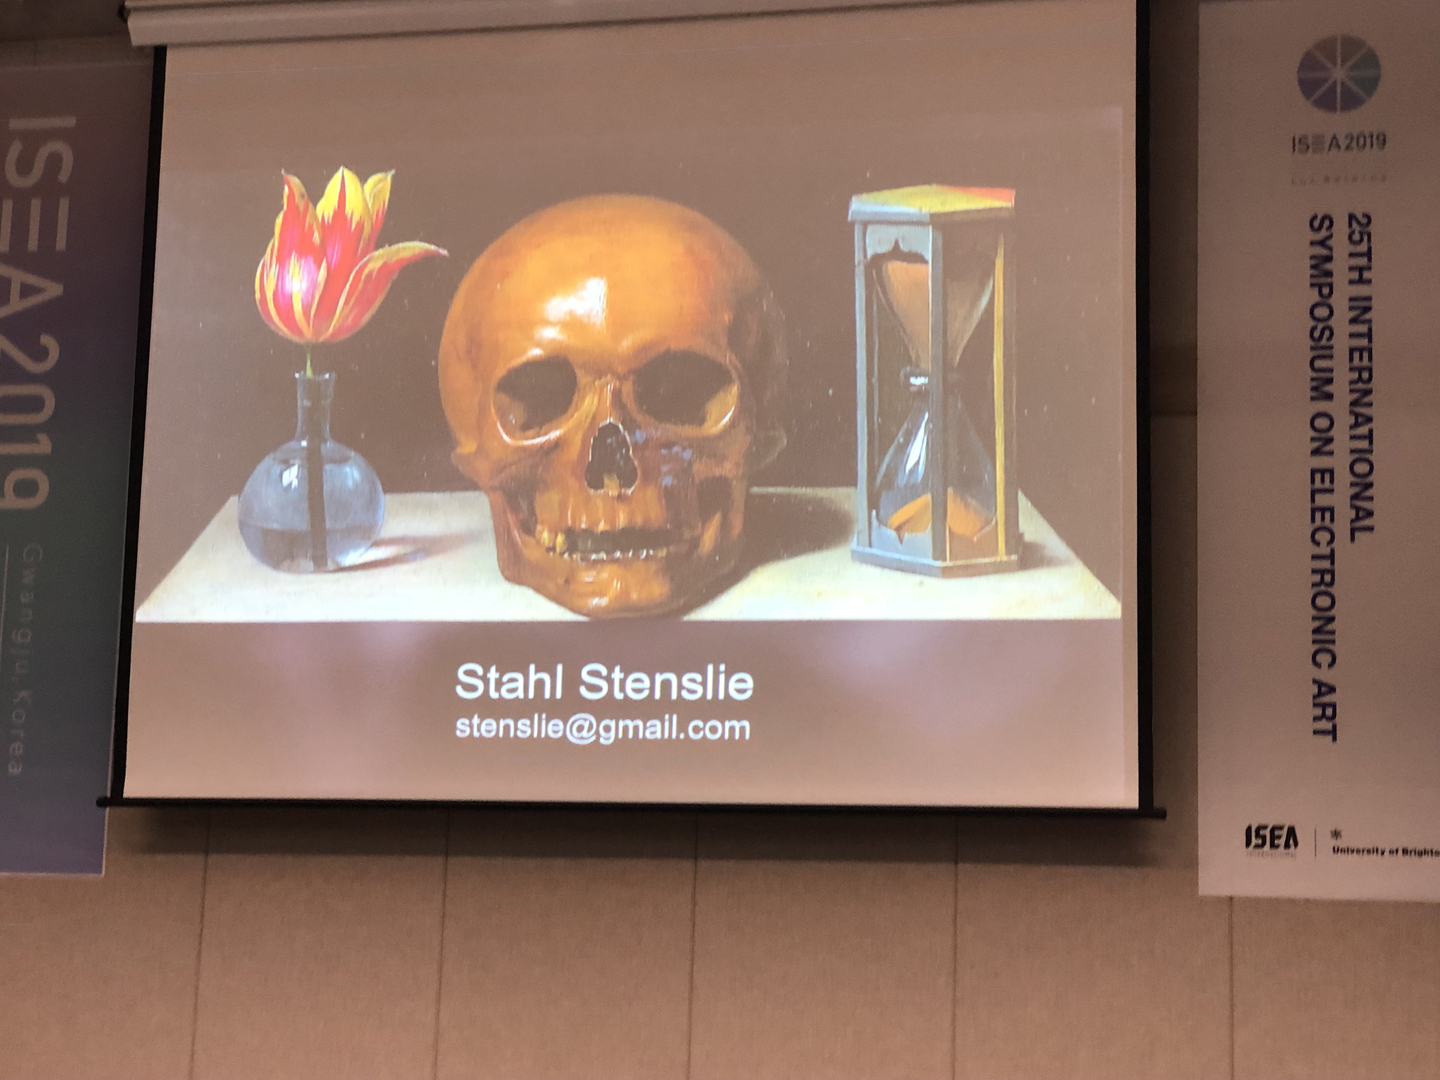 ©ISEA2019: 25th International Symposium on Electronic Art, Stahl Stenslie, Facing Death and Afterlife in Electronic Art